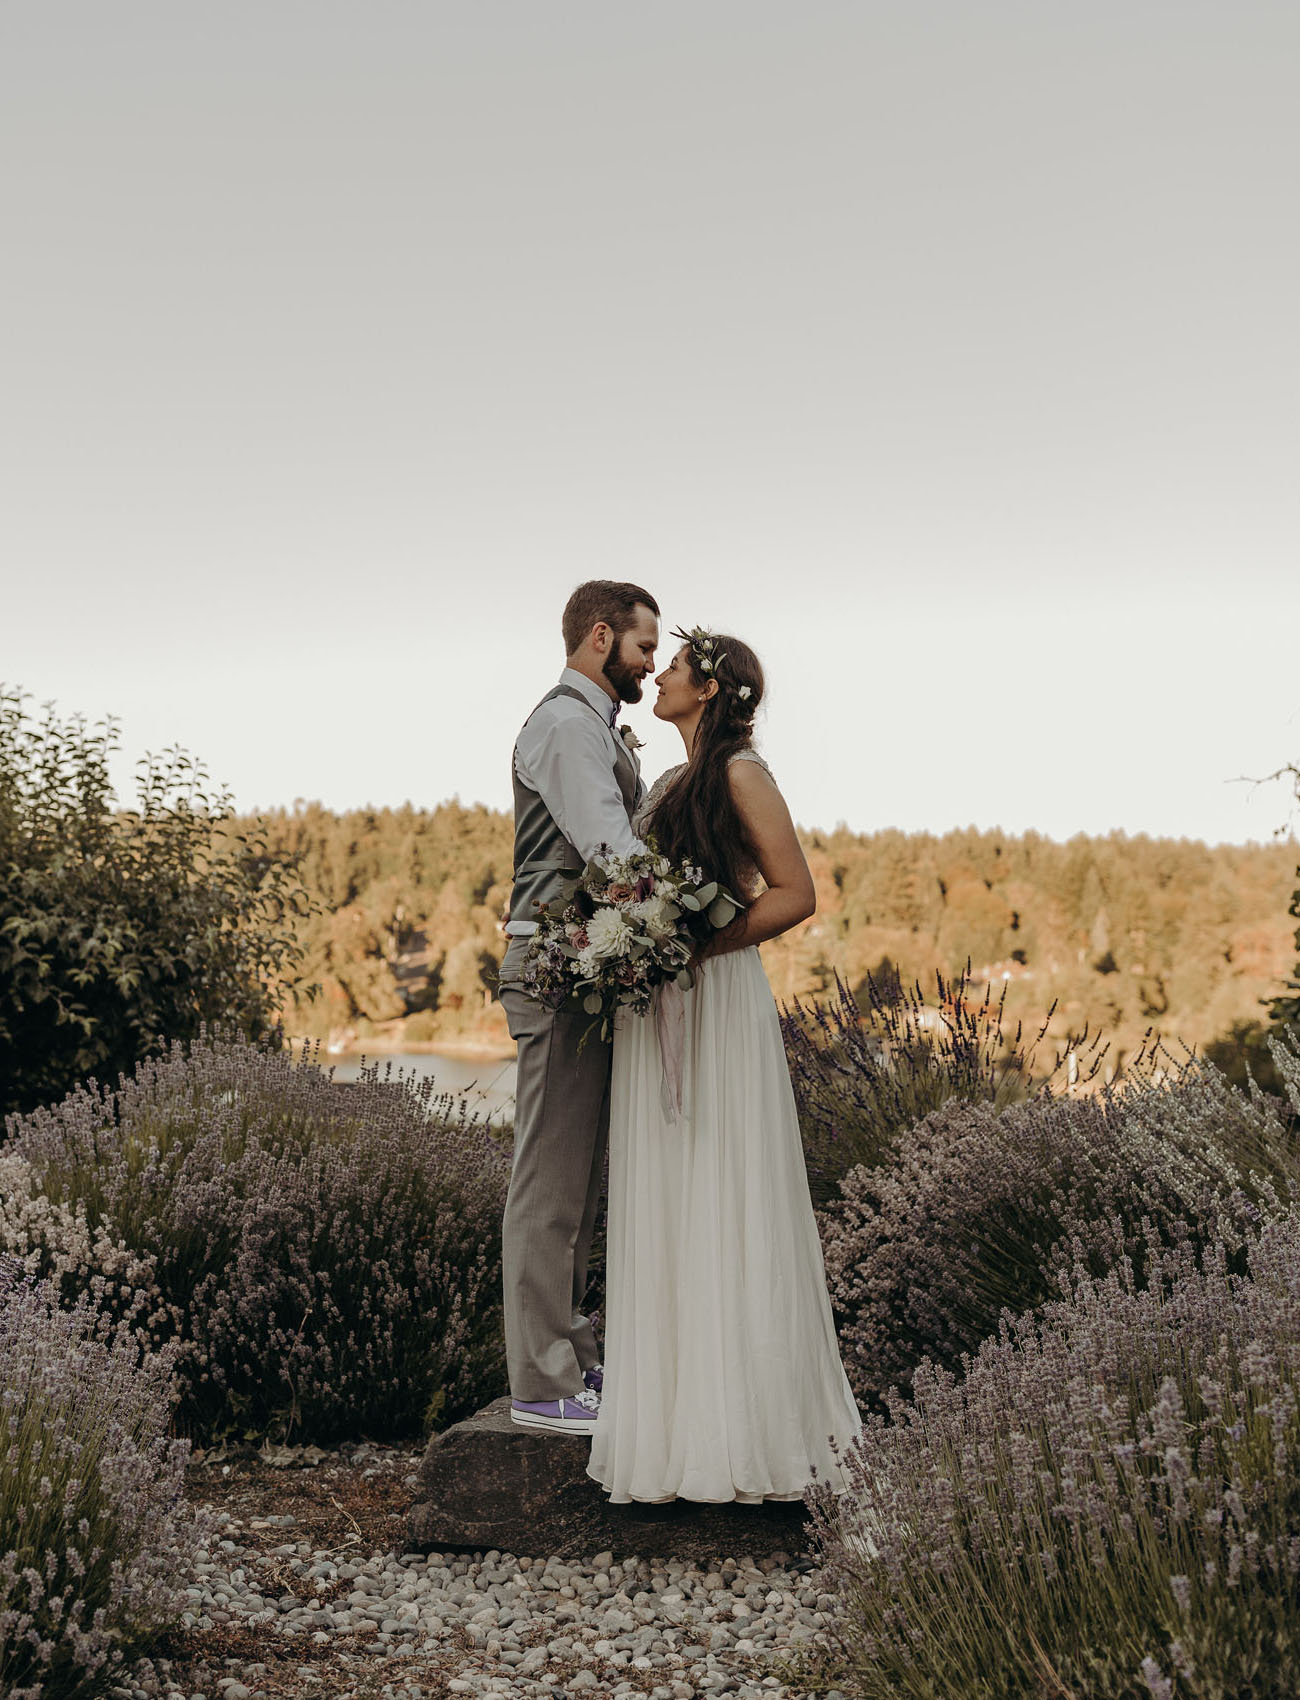 For the Love of Lavender: An Intimate Elopement on a Lavender Farm in Washington